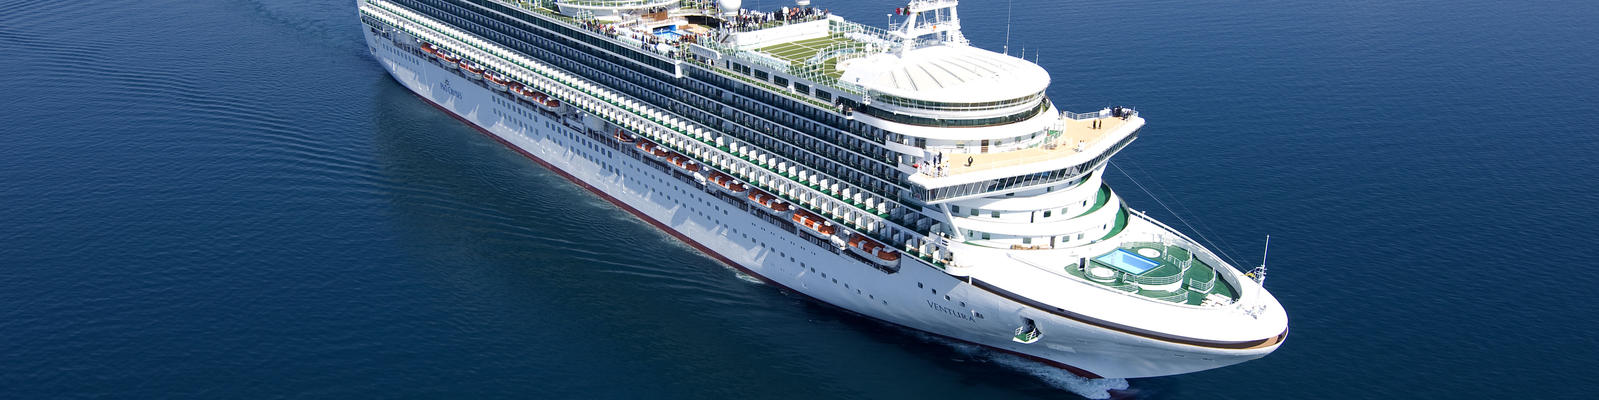 PO Ventura Cruise Ship Review Photos Departure Ports On - Cruise ship tonnage list